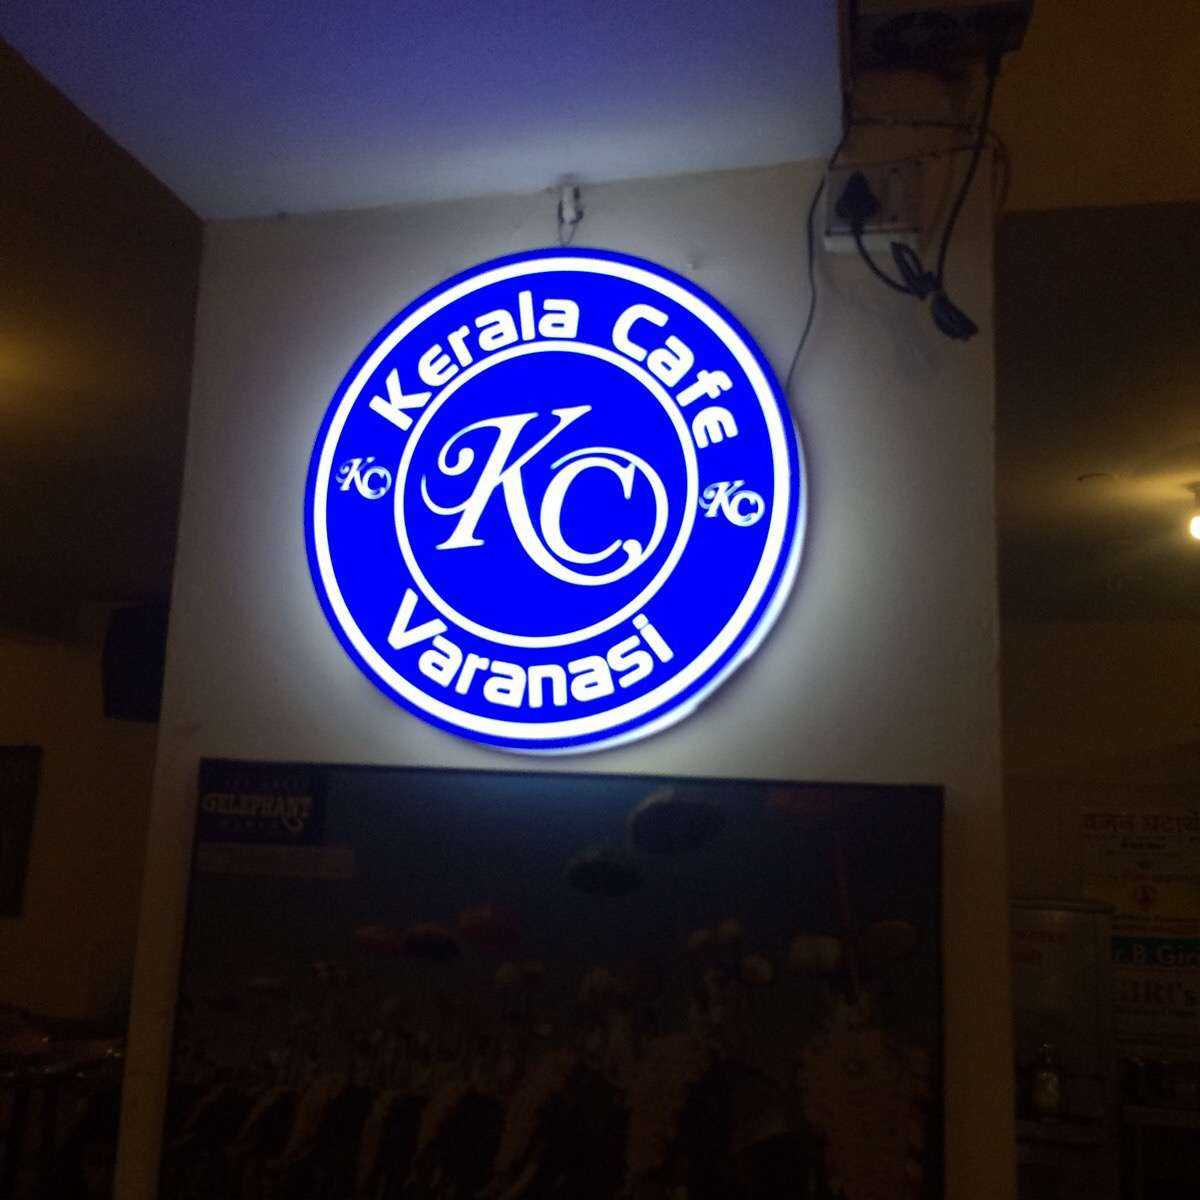 Kerala cafe online chat